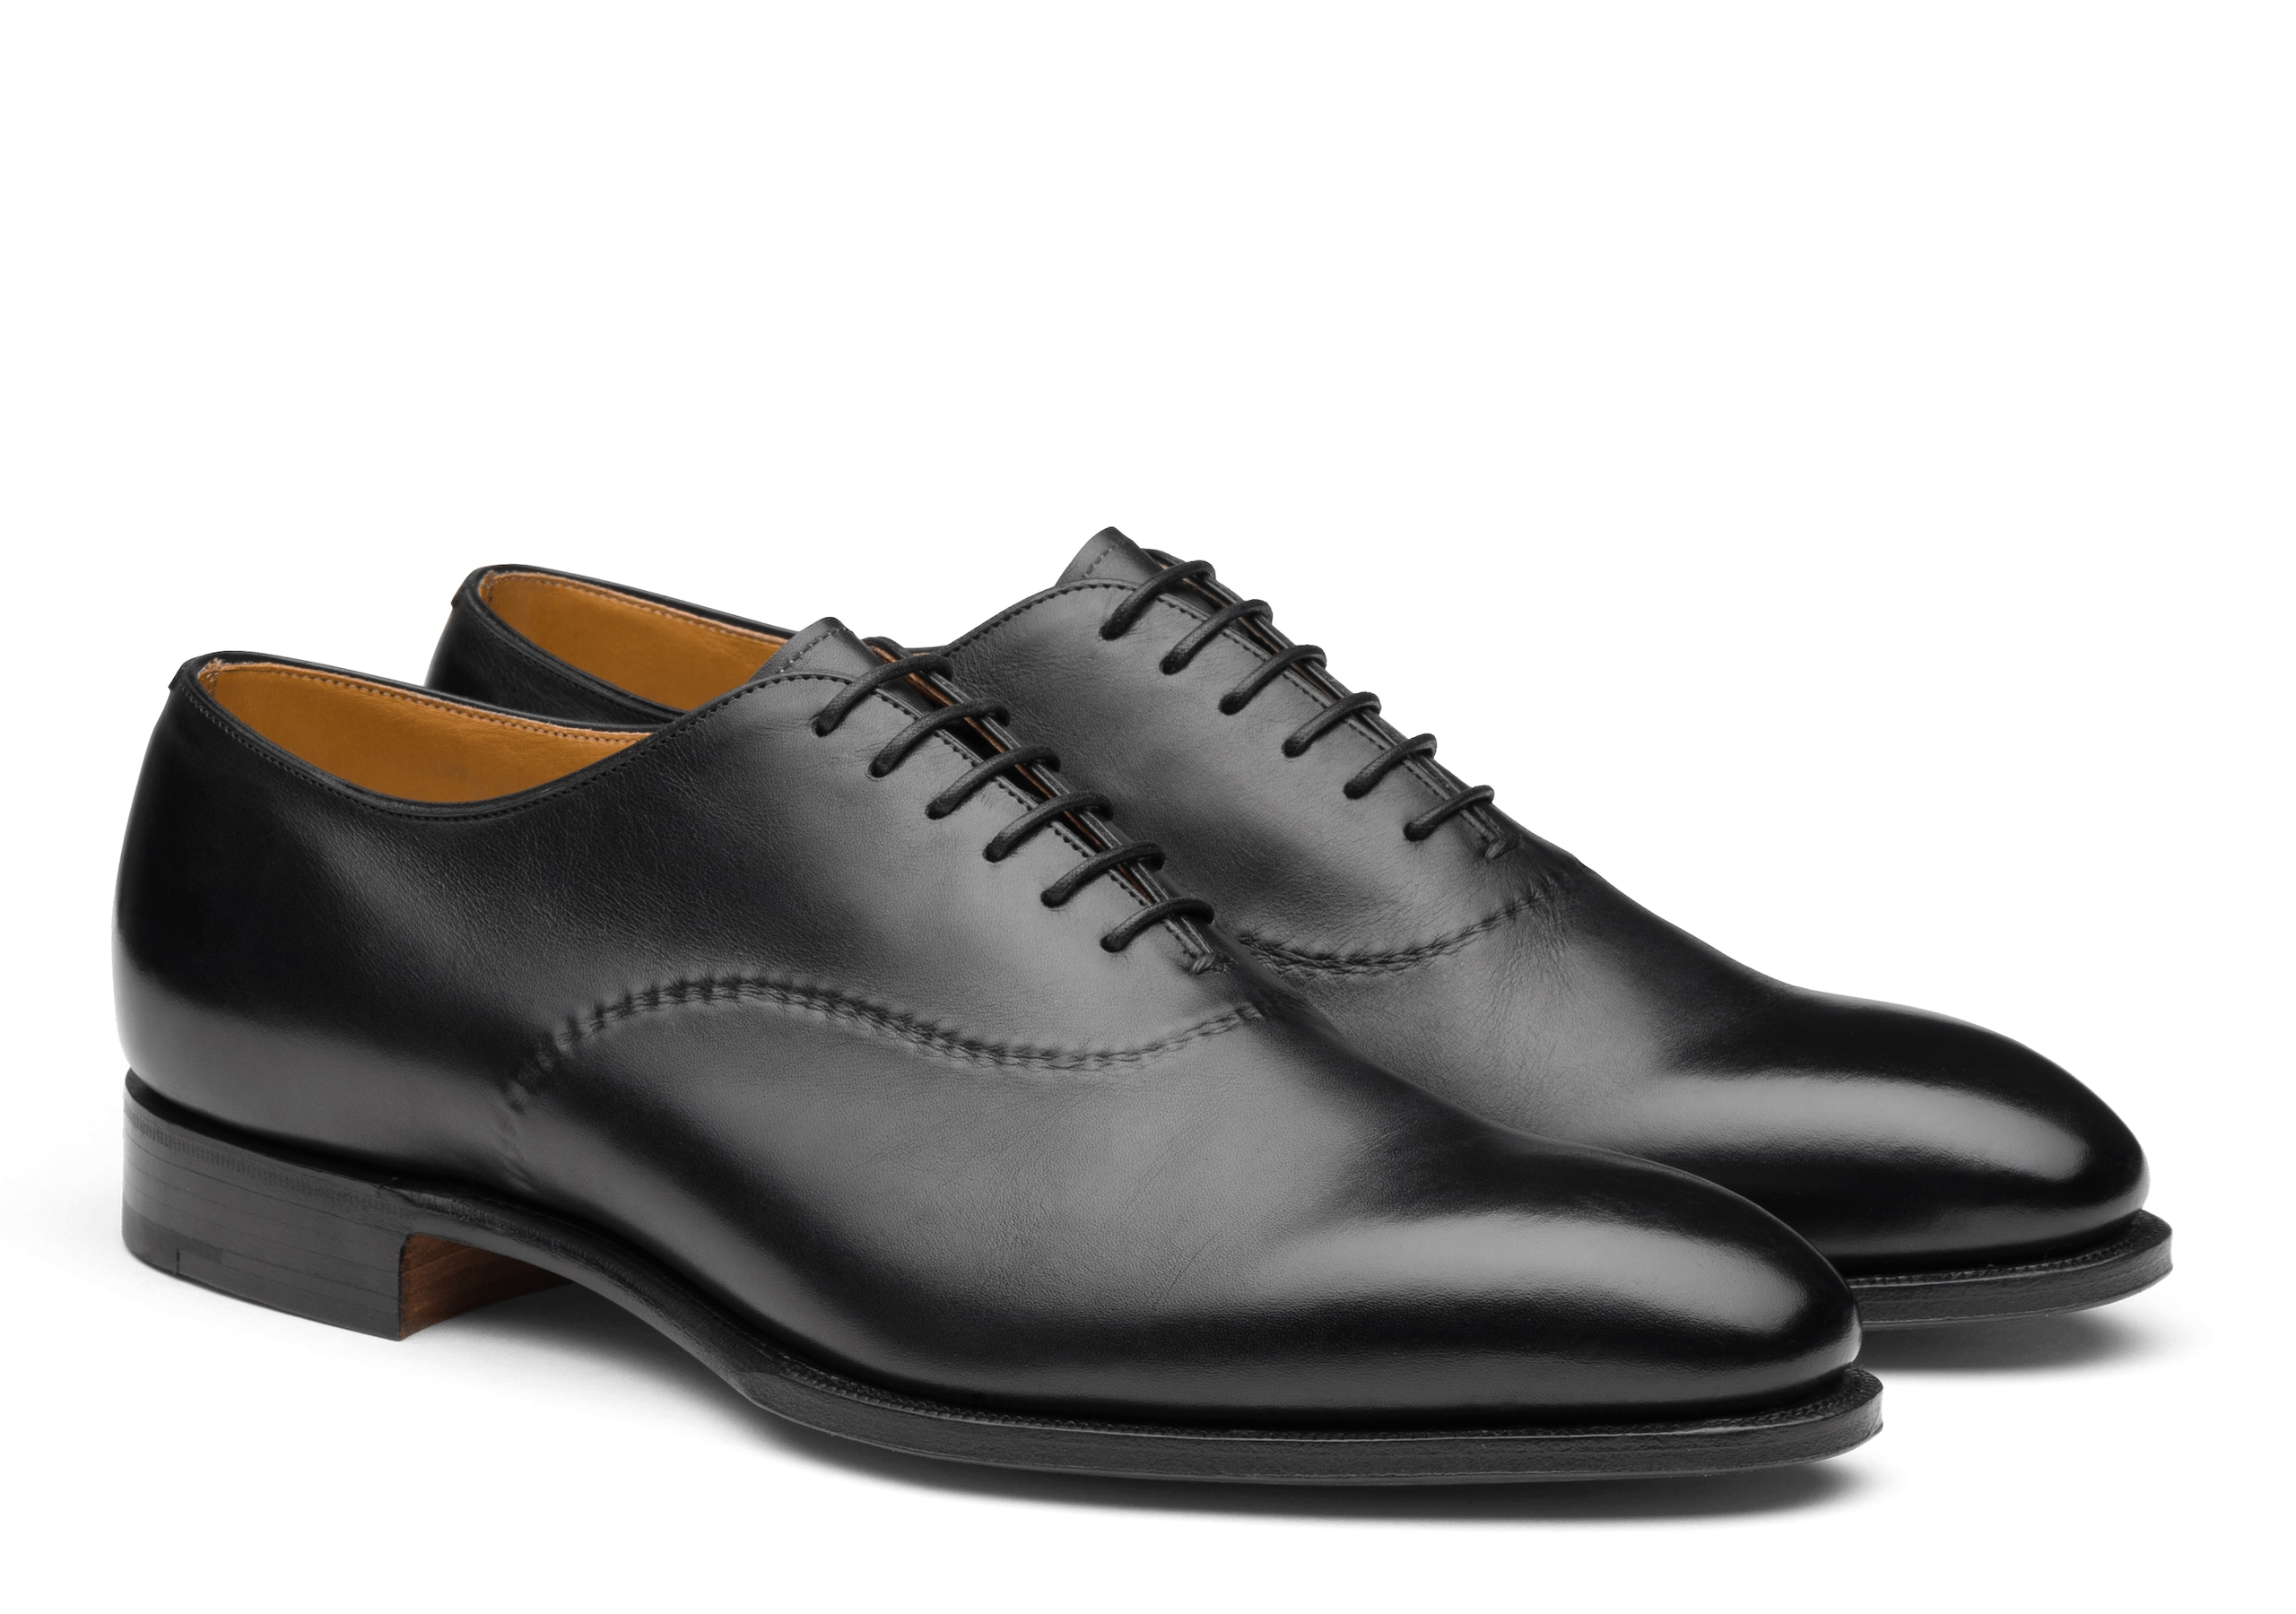 Eliot Church's Masai Leather Oxford Black